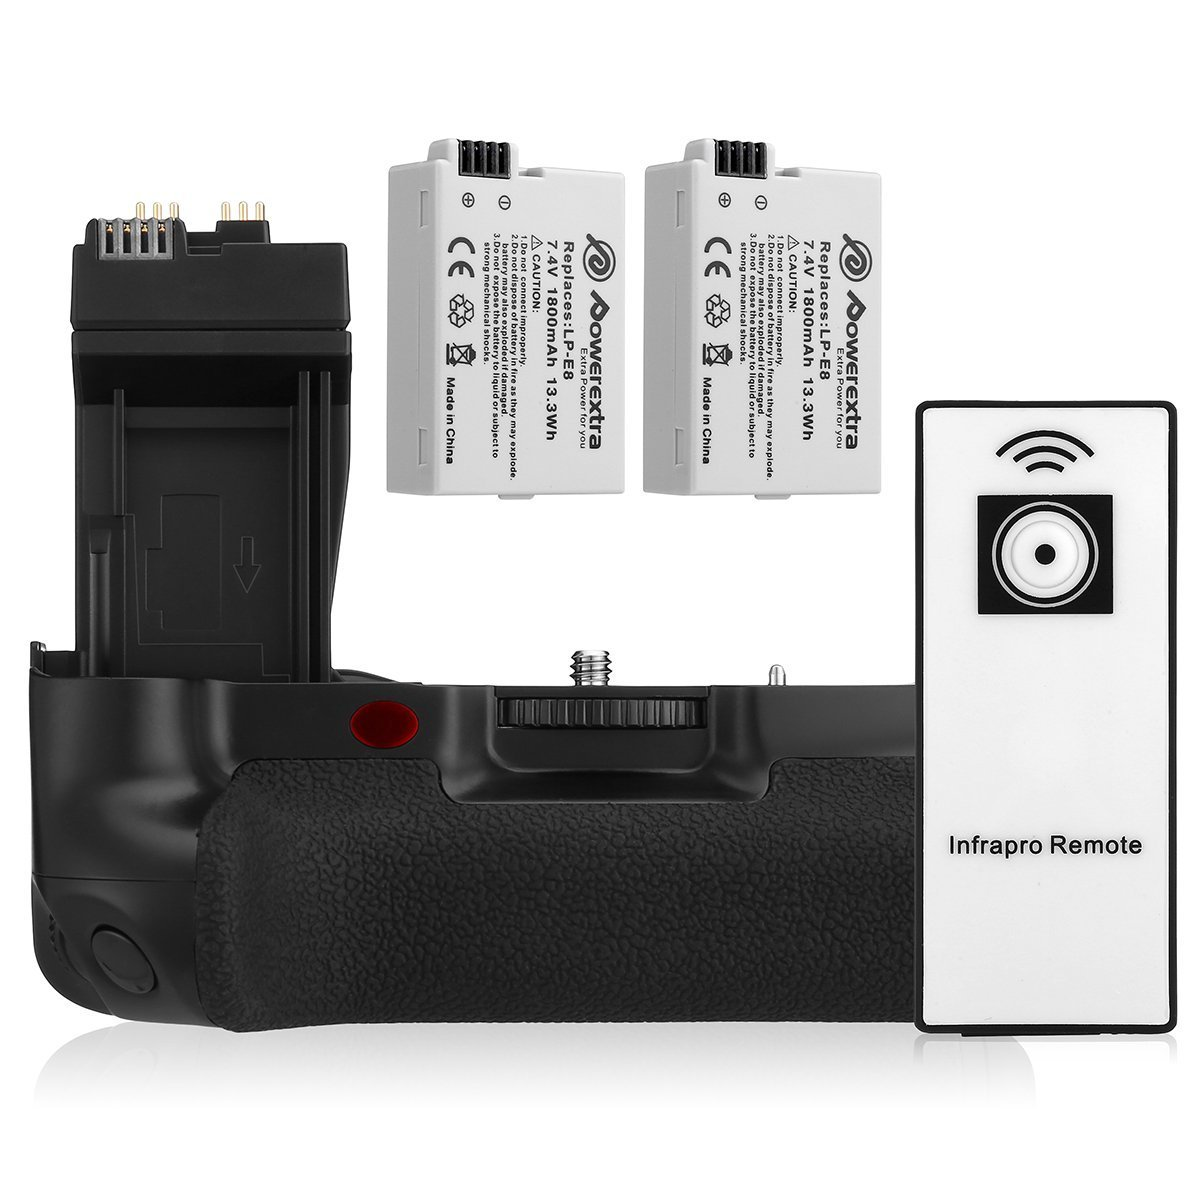 Powerextra BG-E8 Battery Grip + 2-Pack High Capacity 1800mAh LP-E8 Batteries Replacement for Canon EOS 550D/600D/650D/700D Rebel T2i/T3i/T4i/T5i Digital SLR Camera With Infrared Remote Control